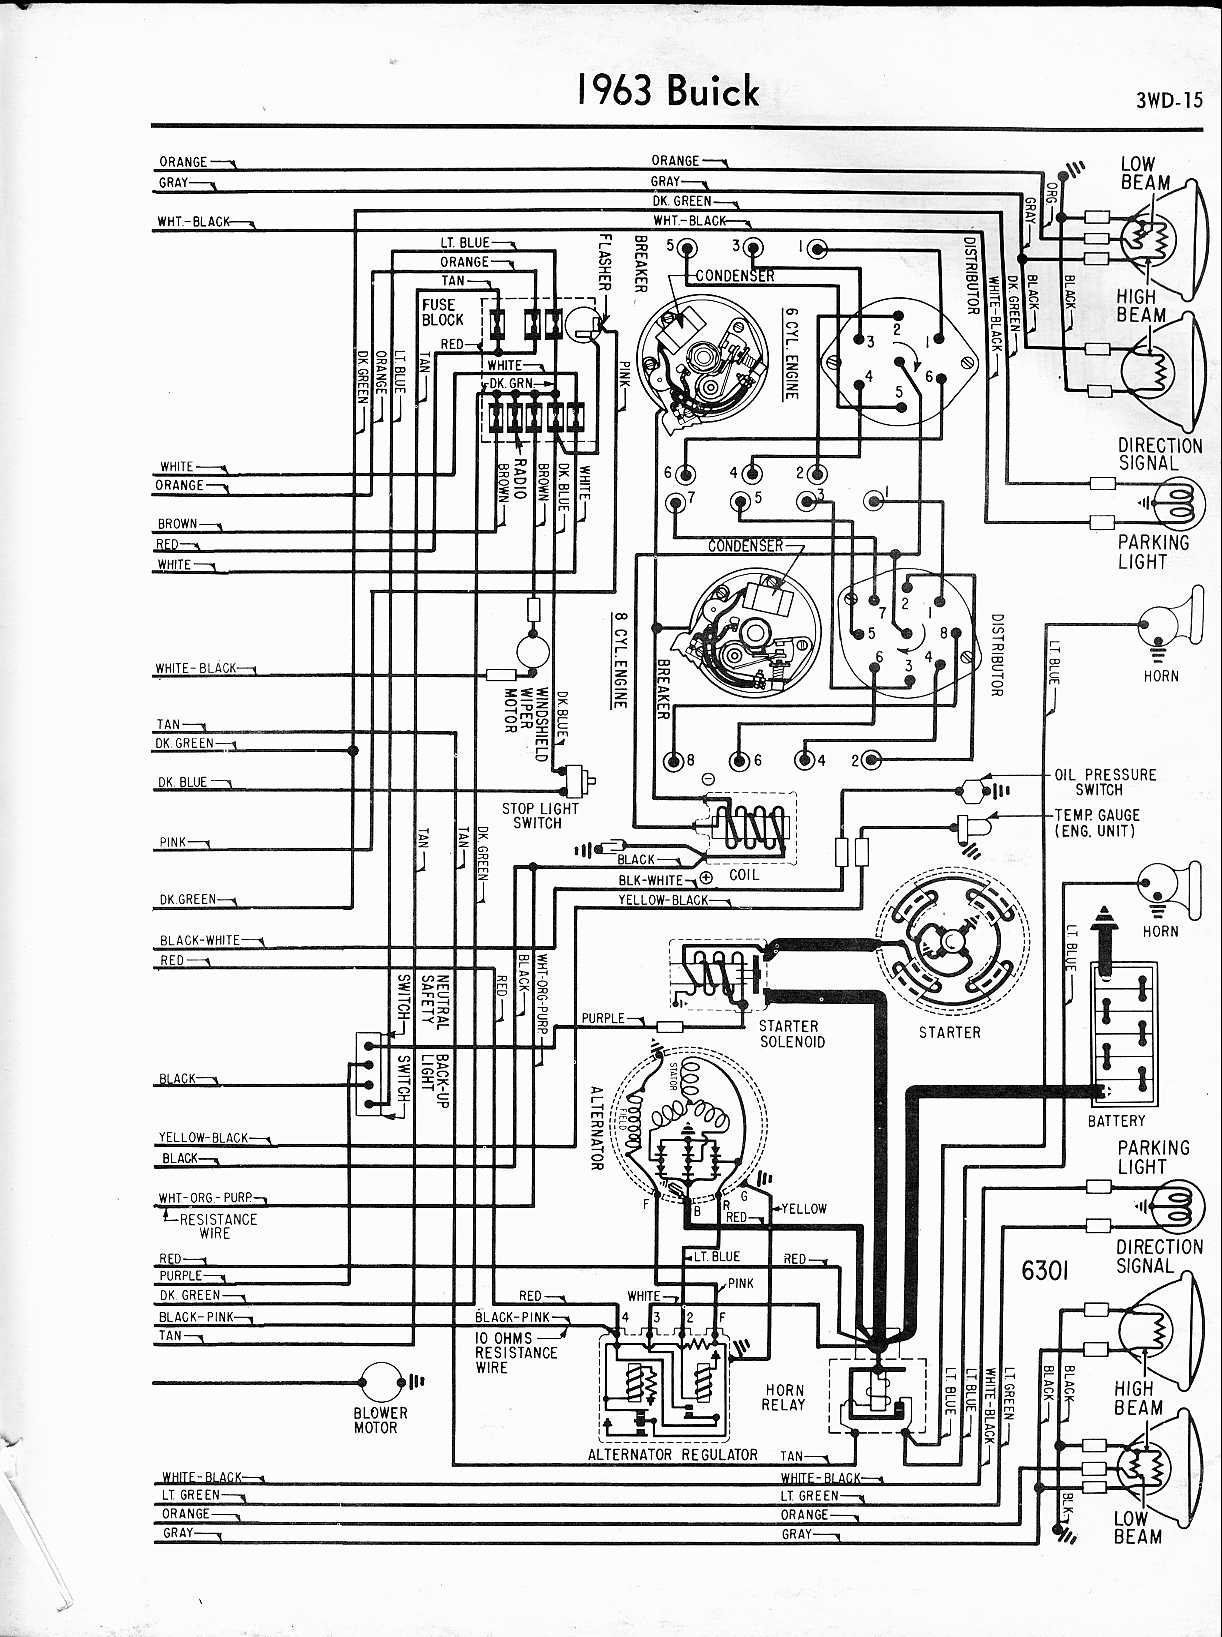 hight resolution of buick wiring diagrams 1957 1965 1996 buick lesabre wiring diagram 67 buick wiring diagram